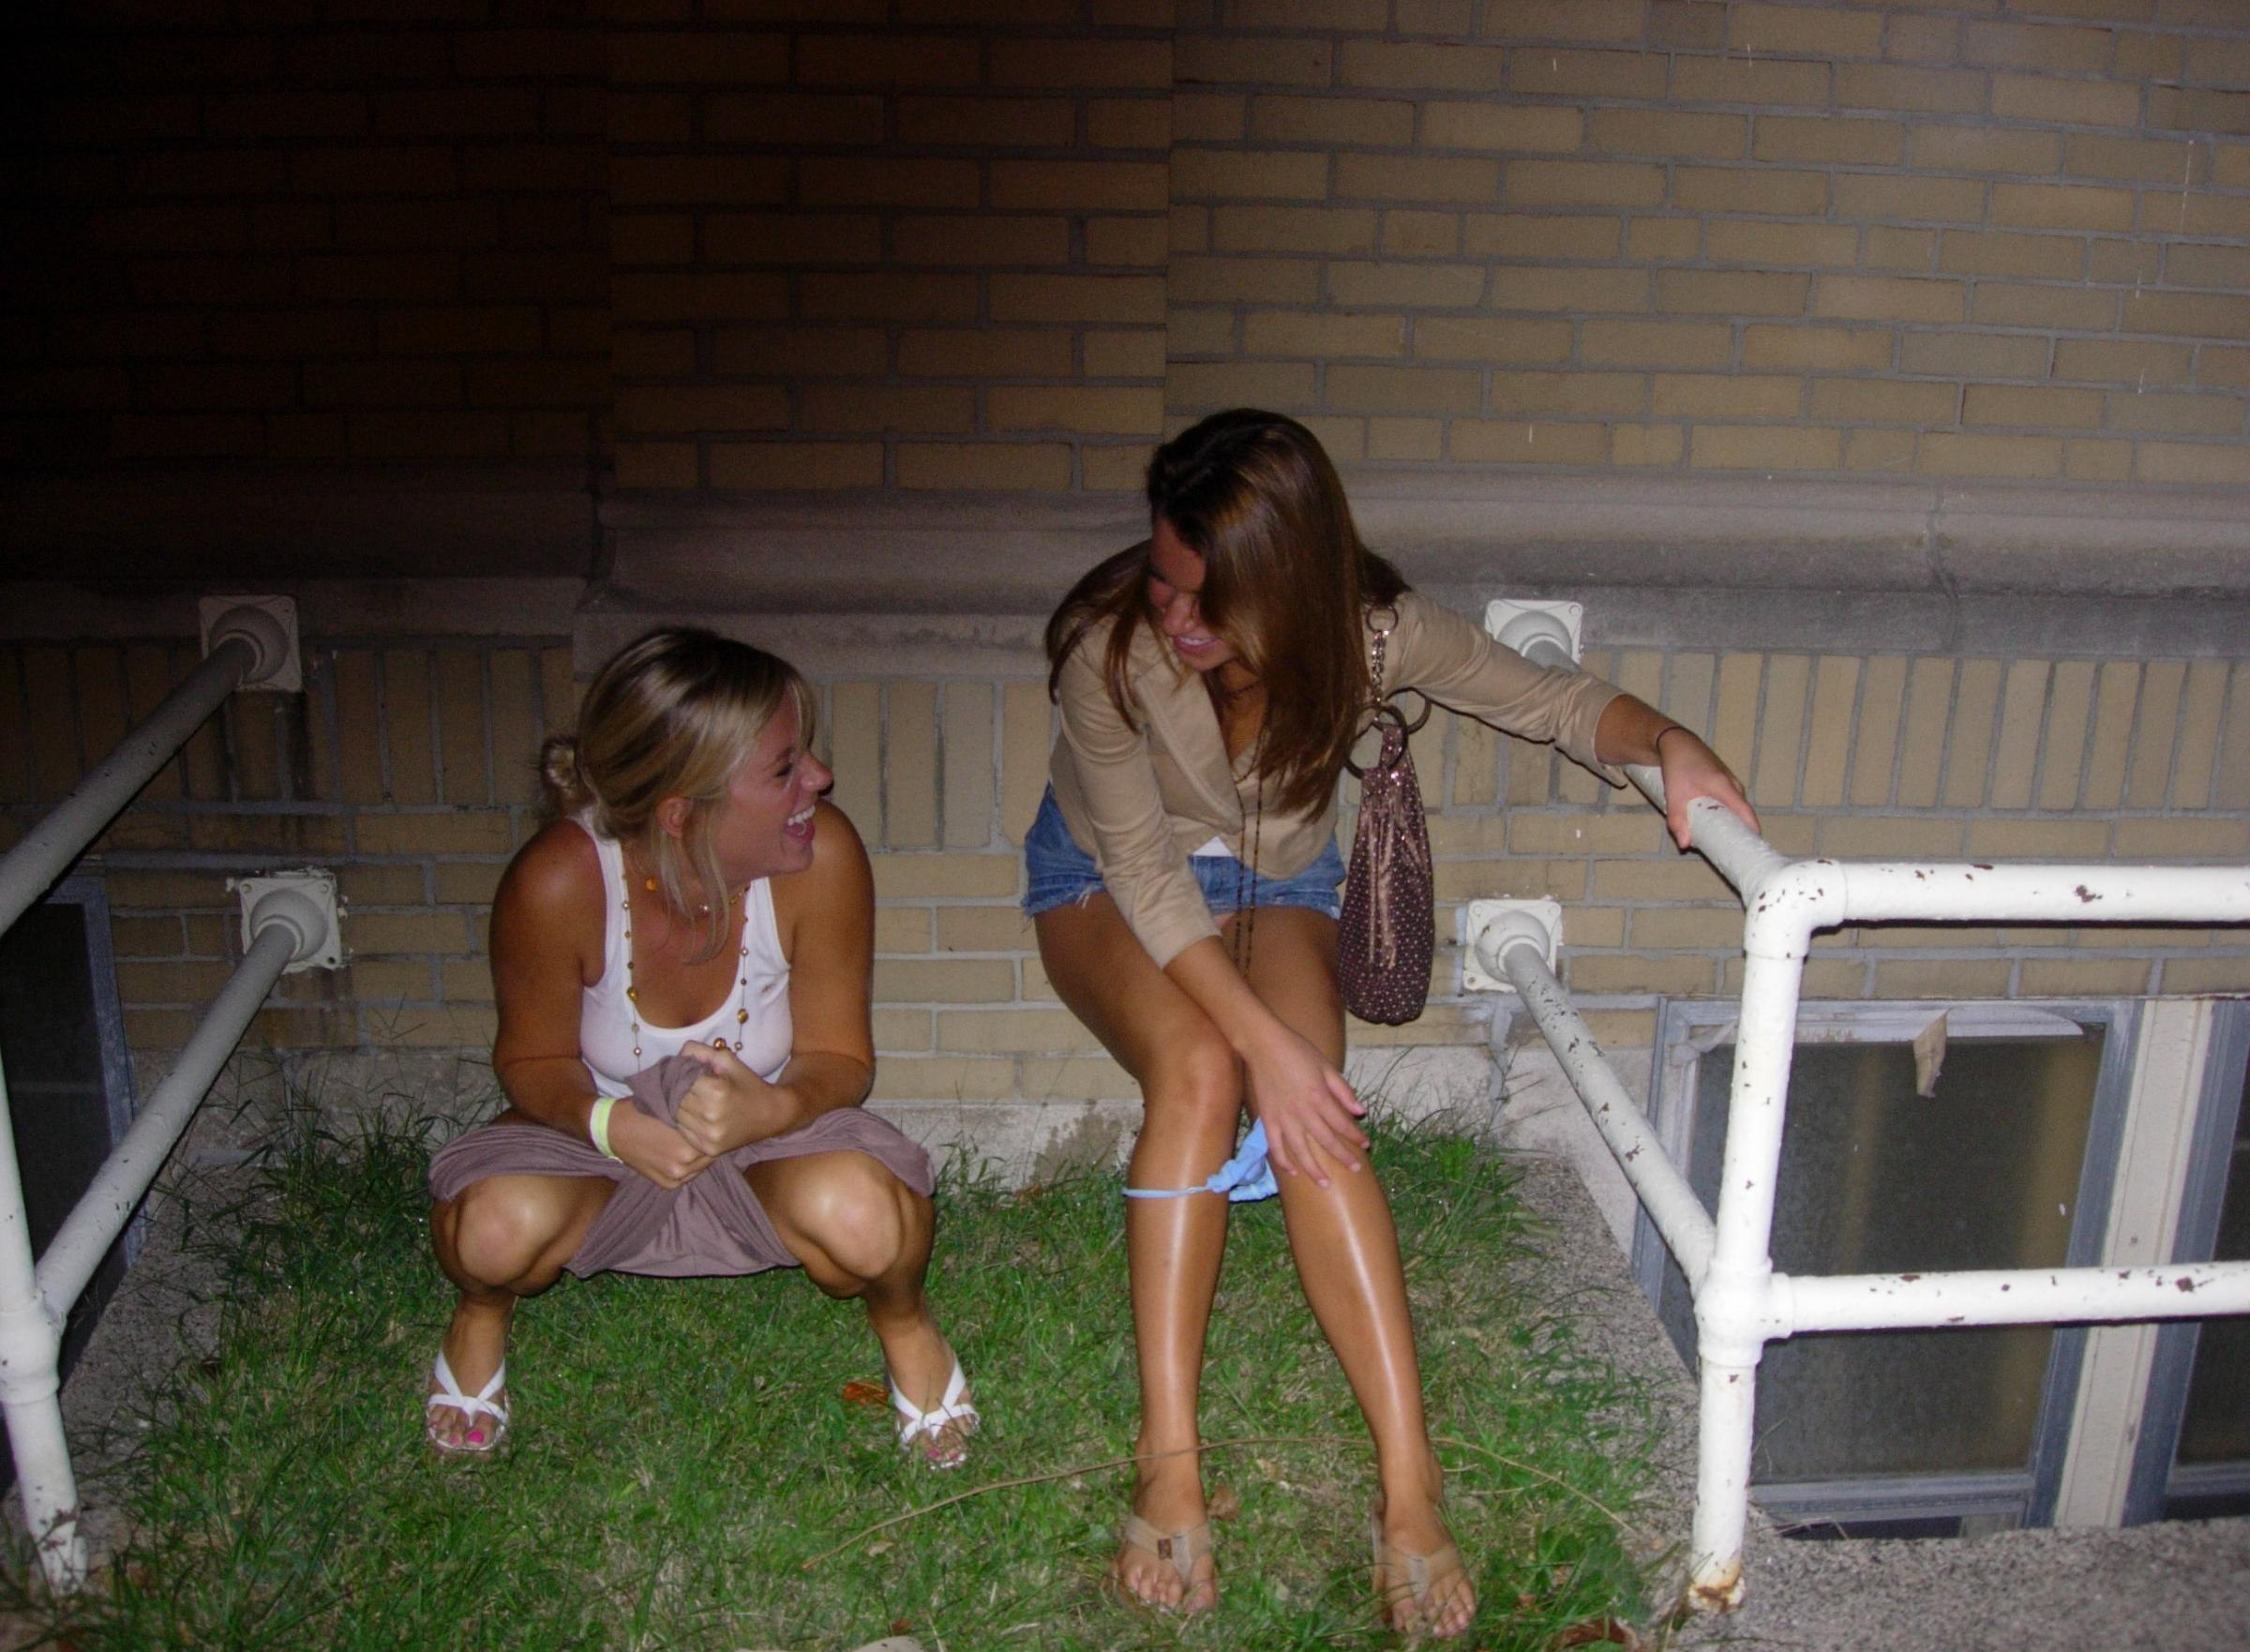 Real girls drunk drunk funniest peeing peeing